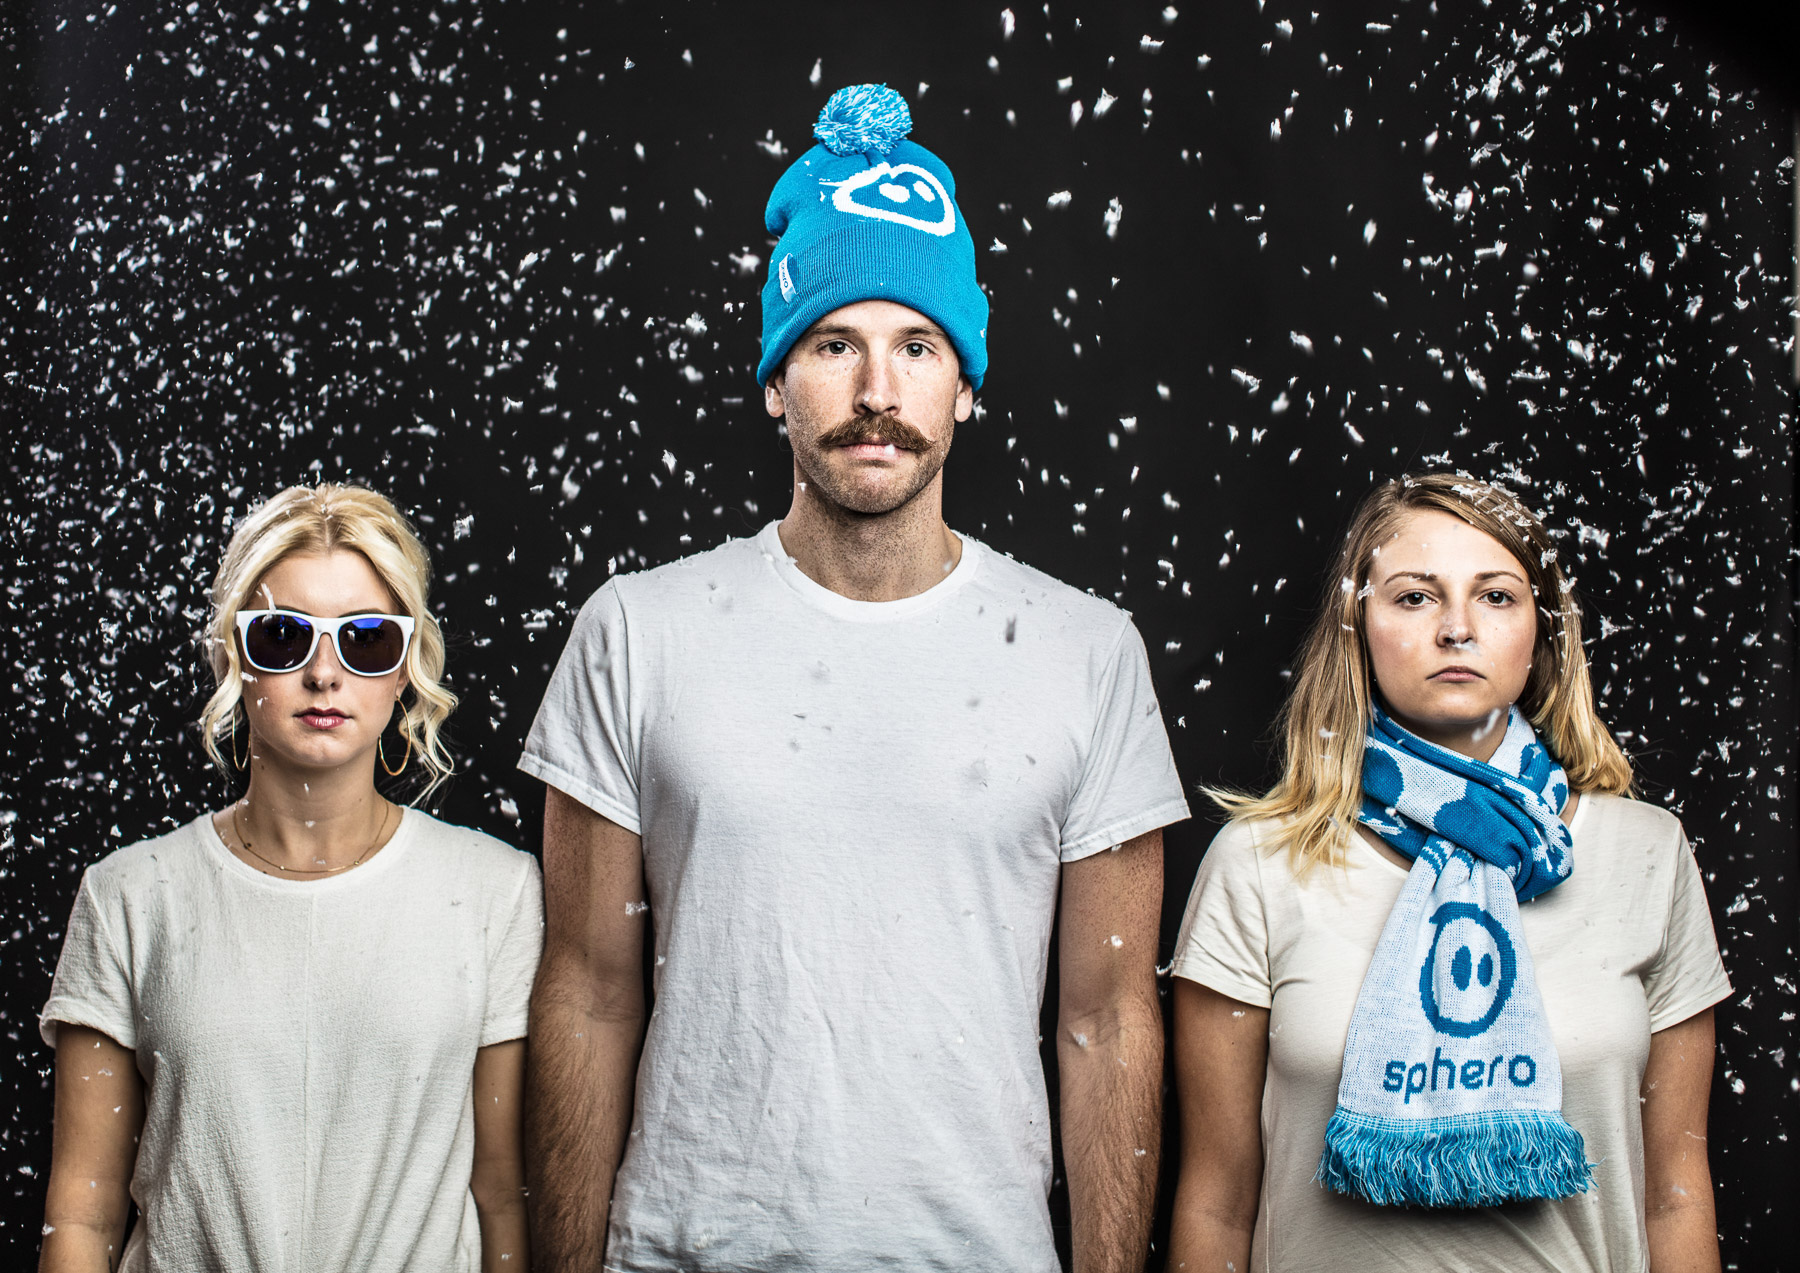 Portrait of 3 people in snowy studio scene with beanies and sunglasses on in Boulder, Colorado.